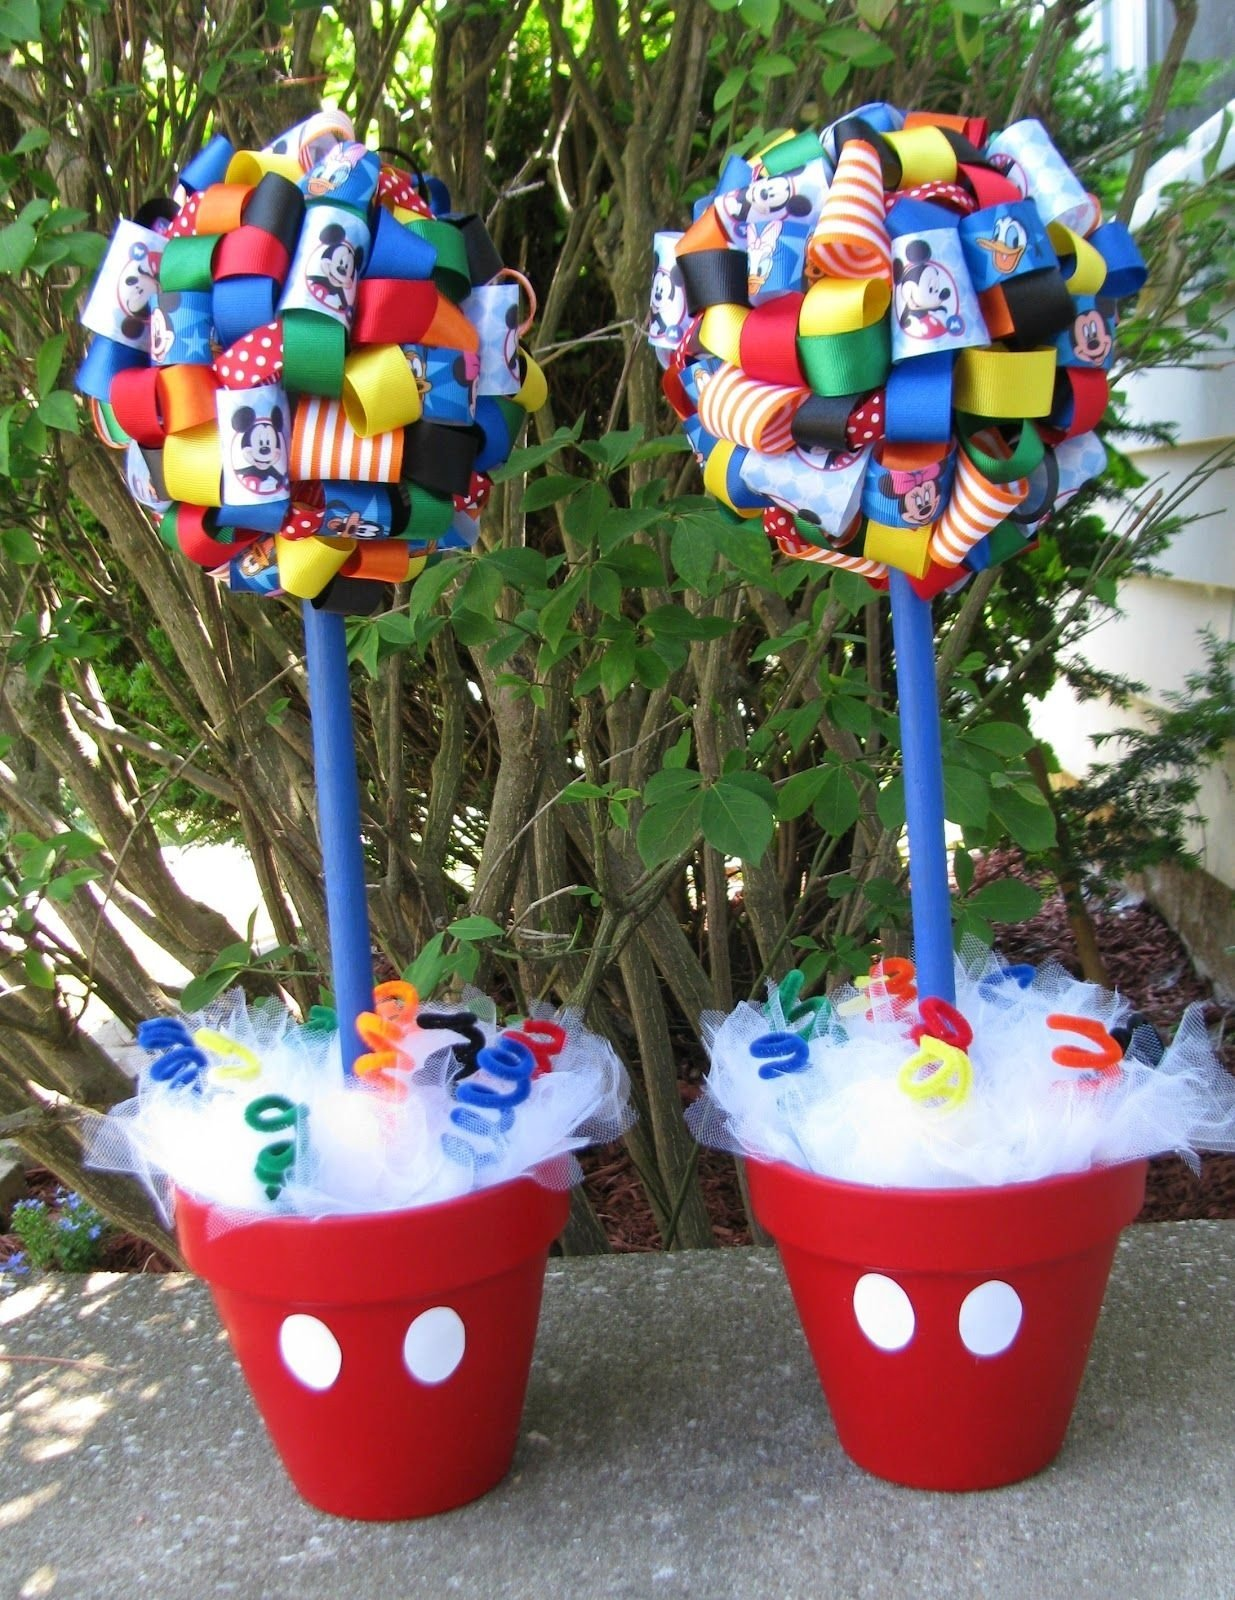 10 Perfect Mickey Mouse Party Ideas For One Year Old img 8707 1235x1600 julian 1st birthday pinterest 2 2021